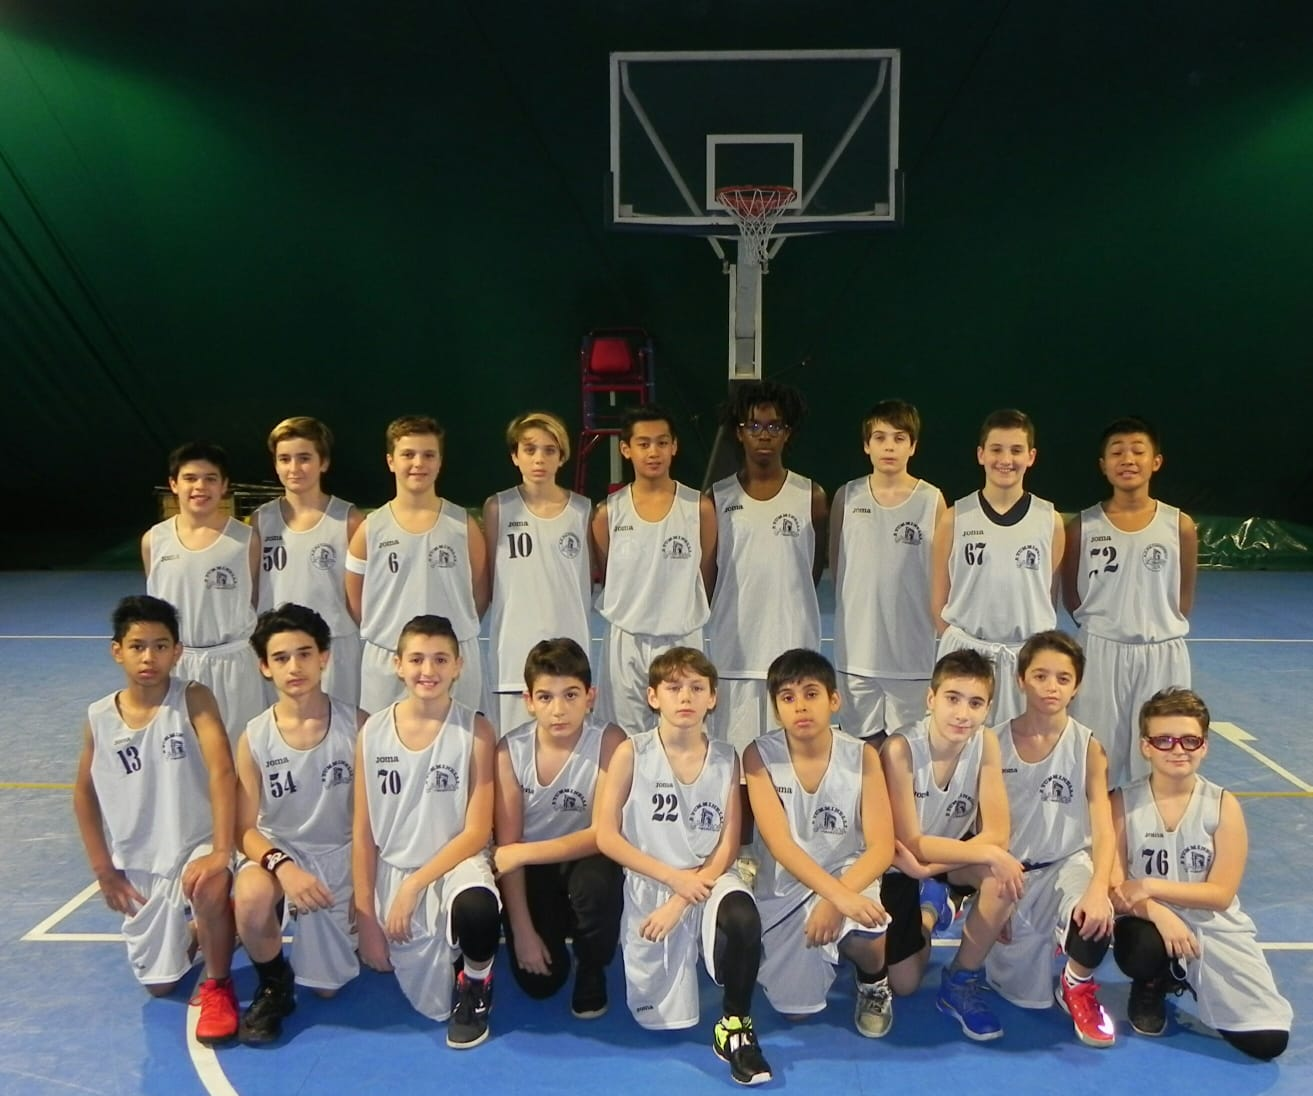 Uisp Basket Milano Calendario.Under 13 Bianca Tumminelli Romana Basket